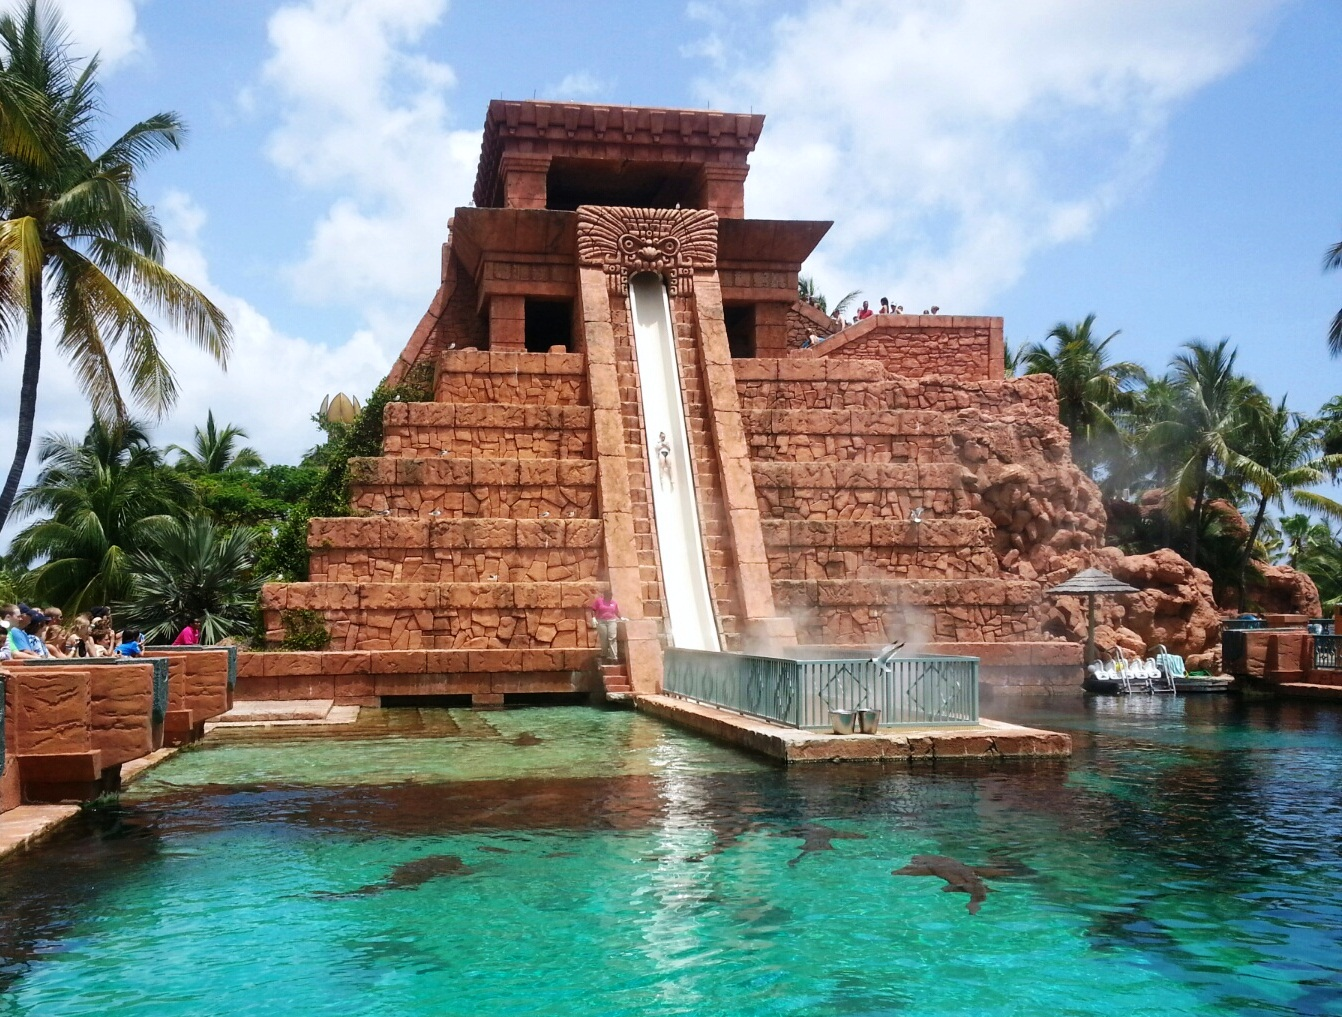 5 Things to Know Before Visiting Atlantis | Traveling Mom